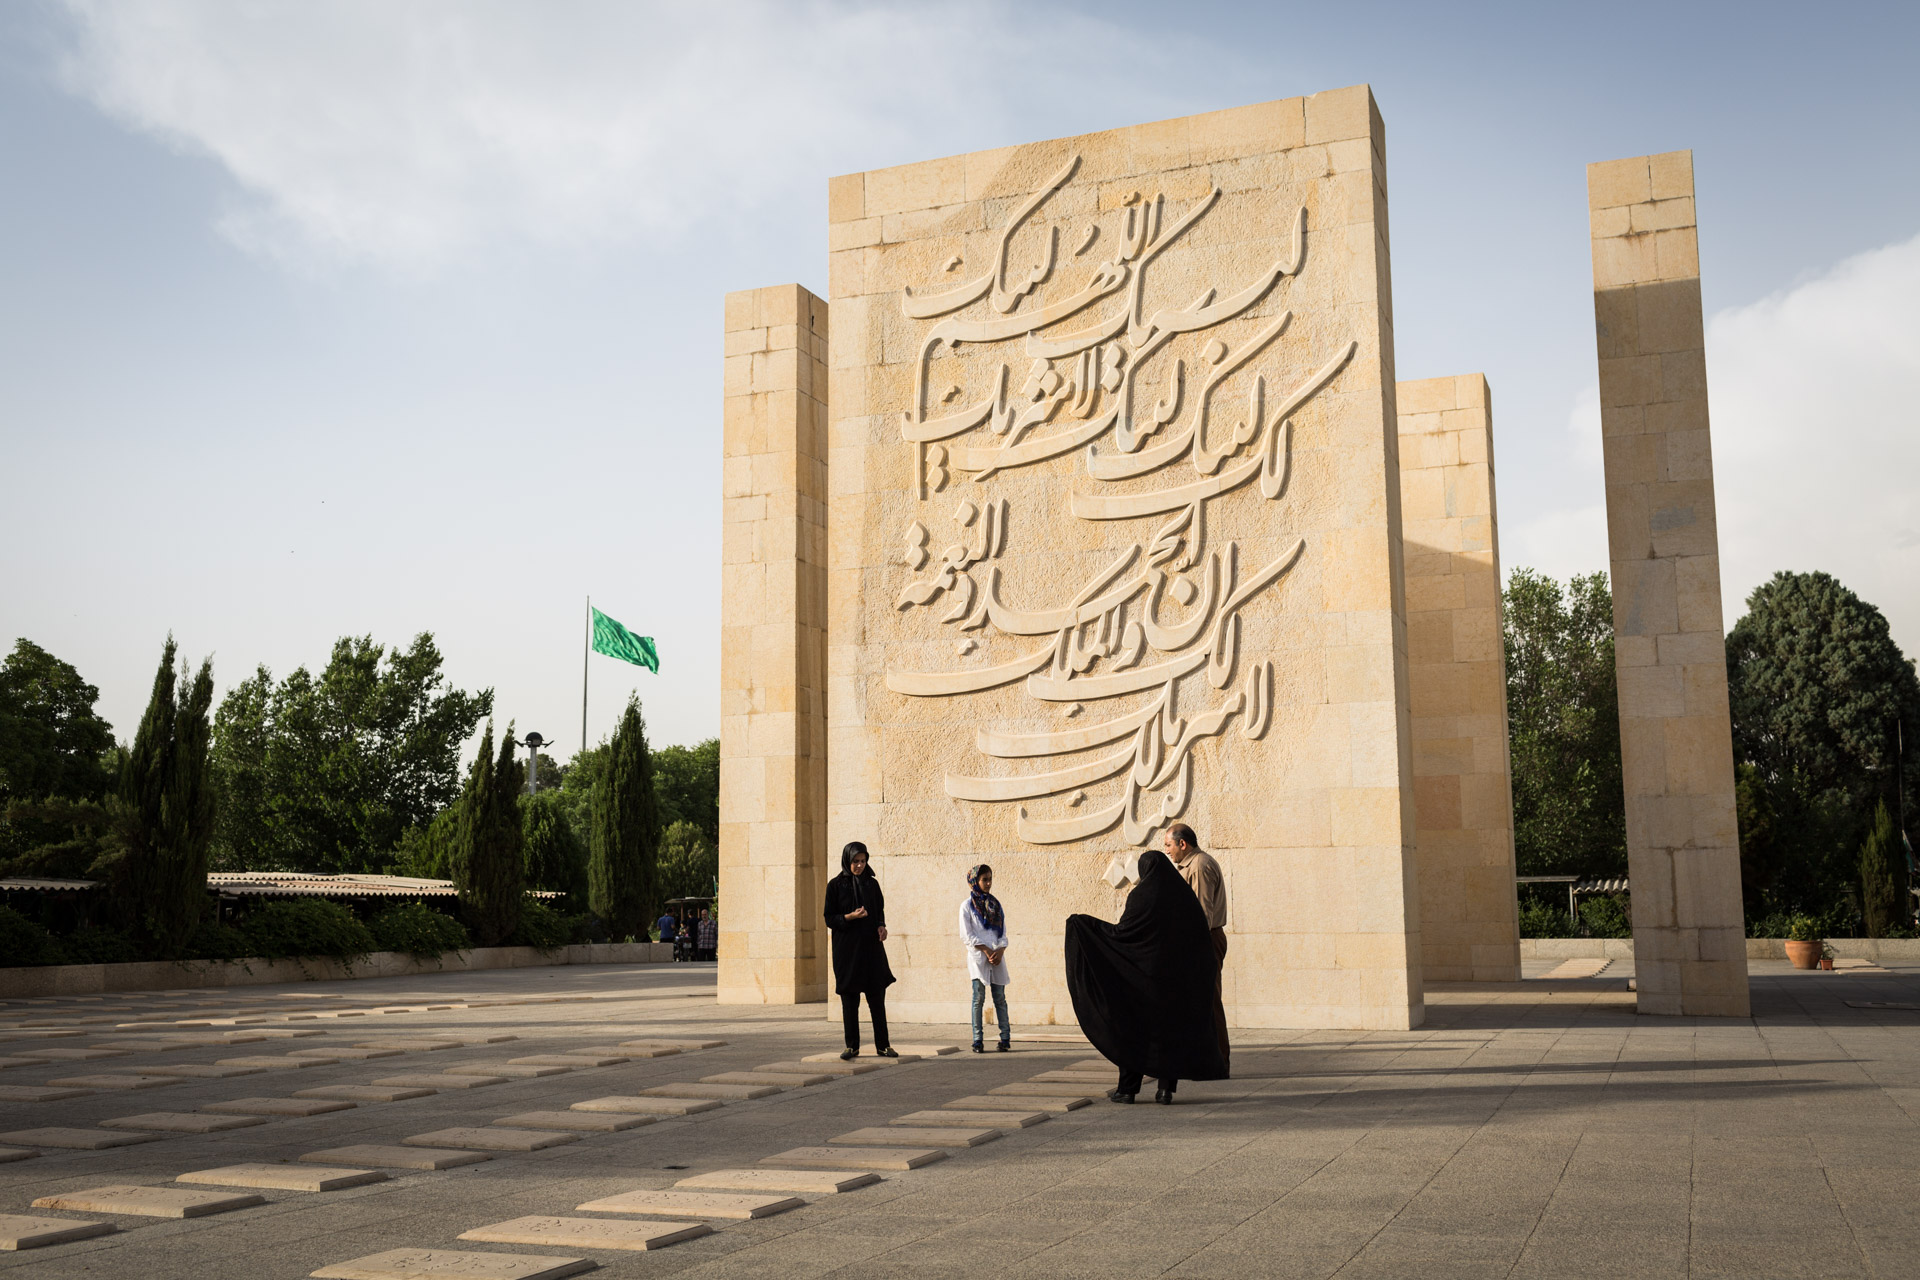 Behesht-e Zahra knows all kinds of martyrs. This monument is dedicated to more than 400 victims of the Mecca incident in 1987.